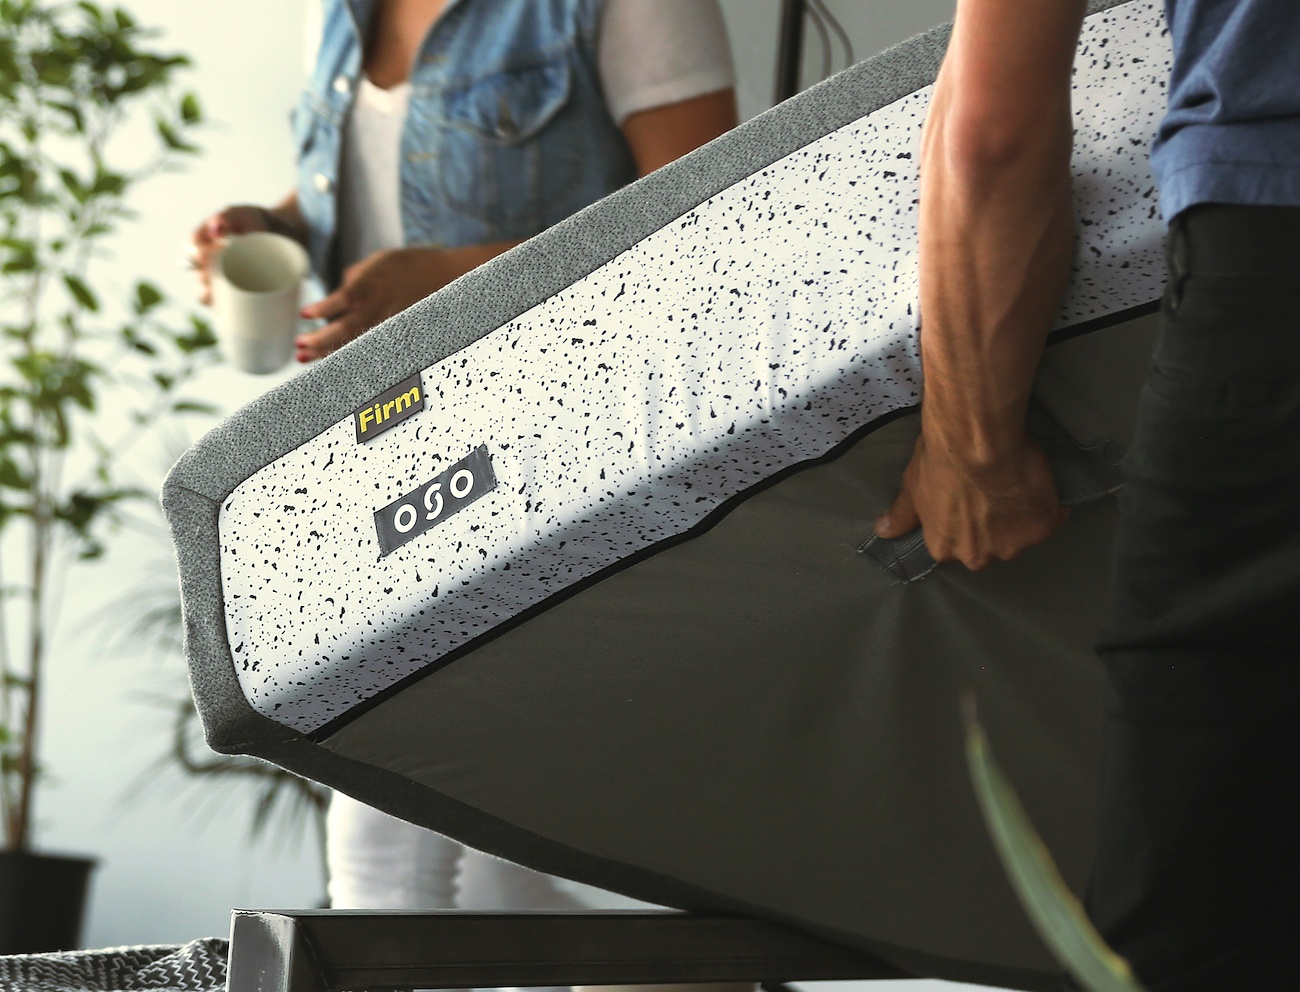 OSO Boxed Mattress With Customized Comfort Options